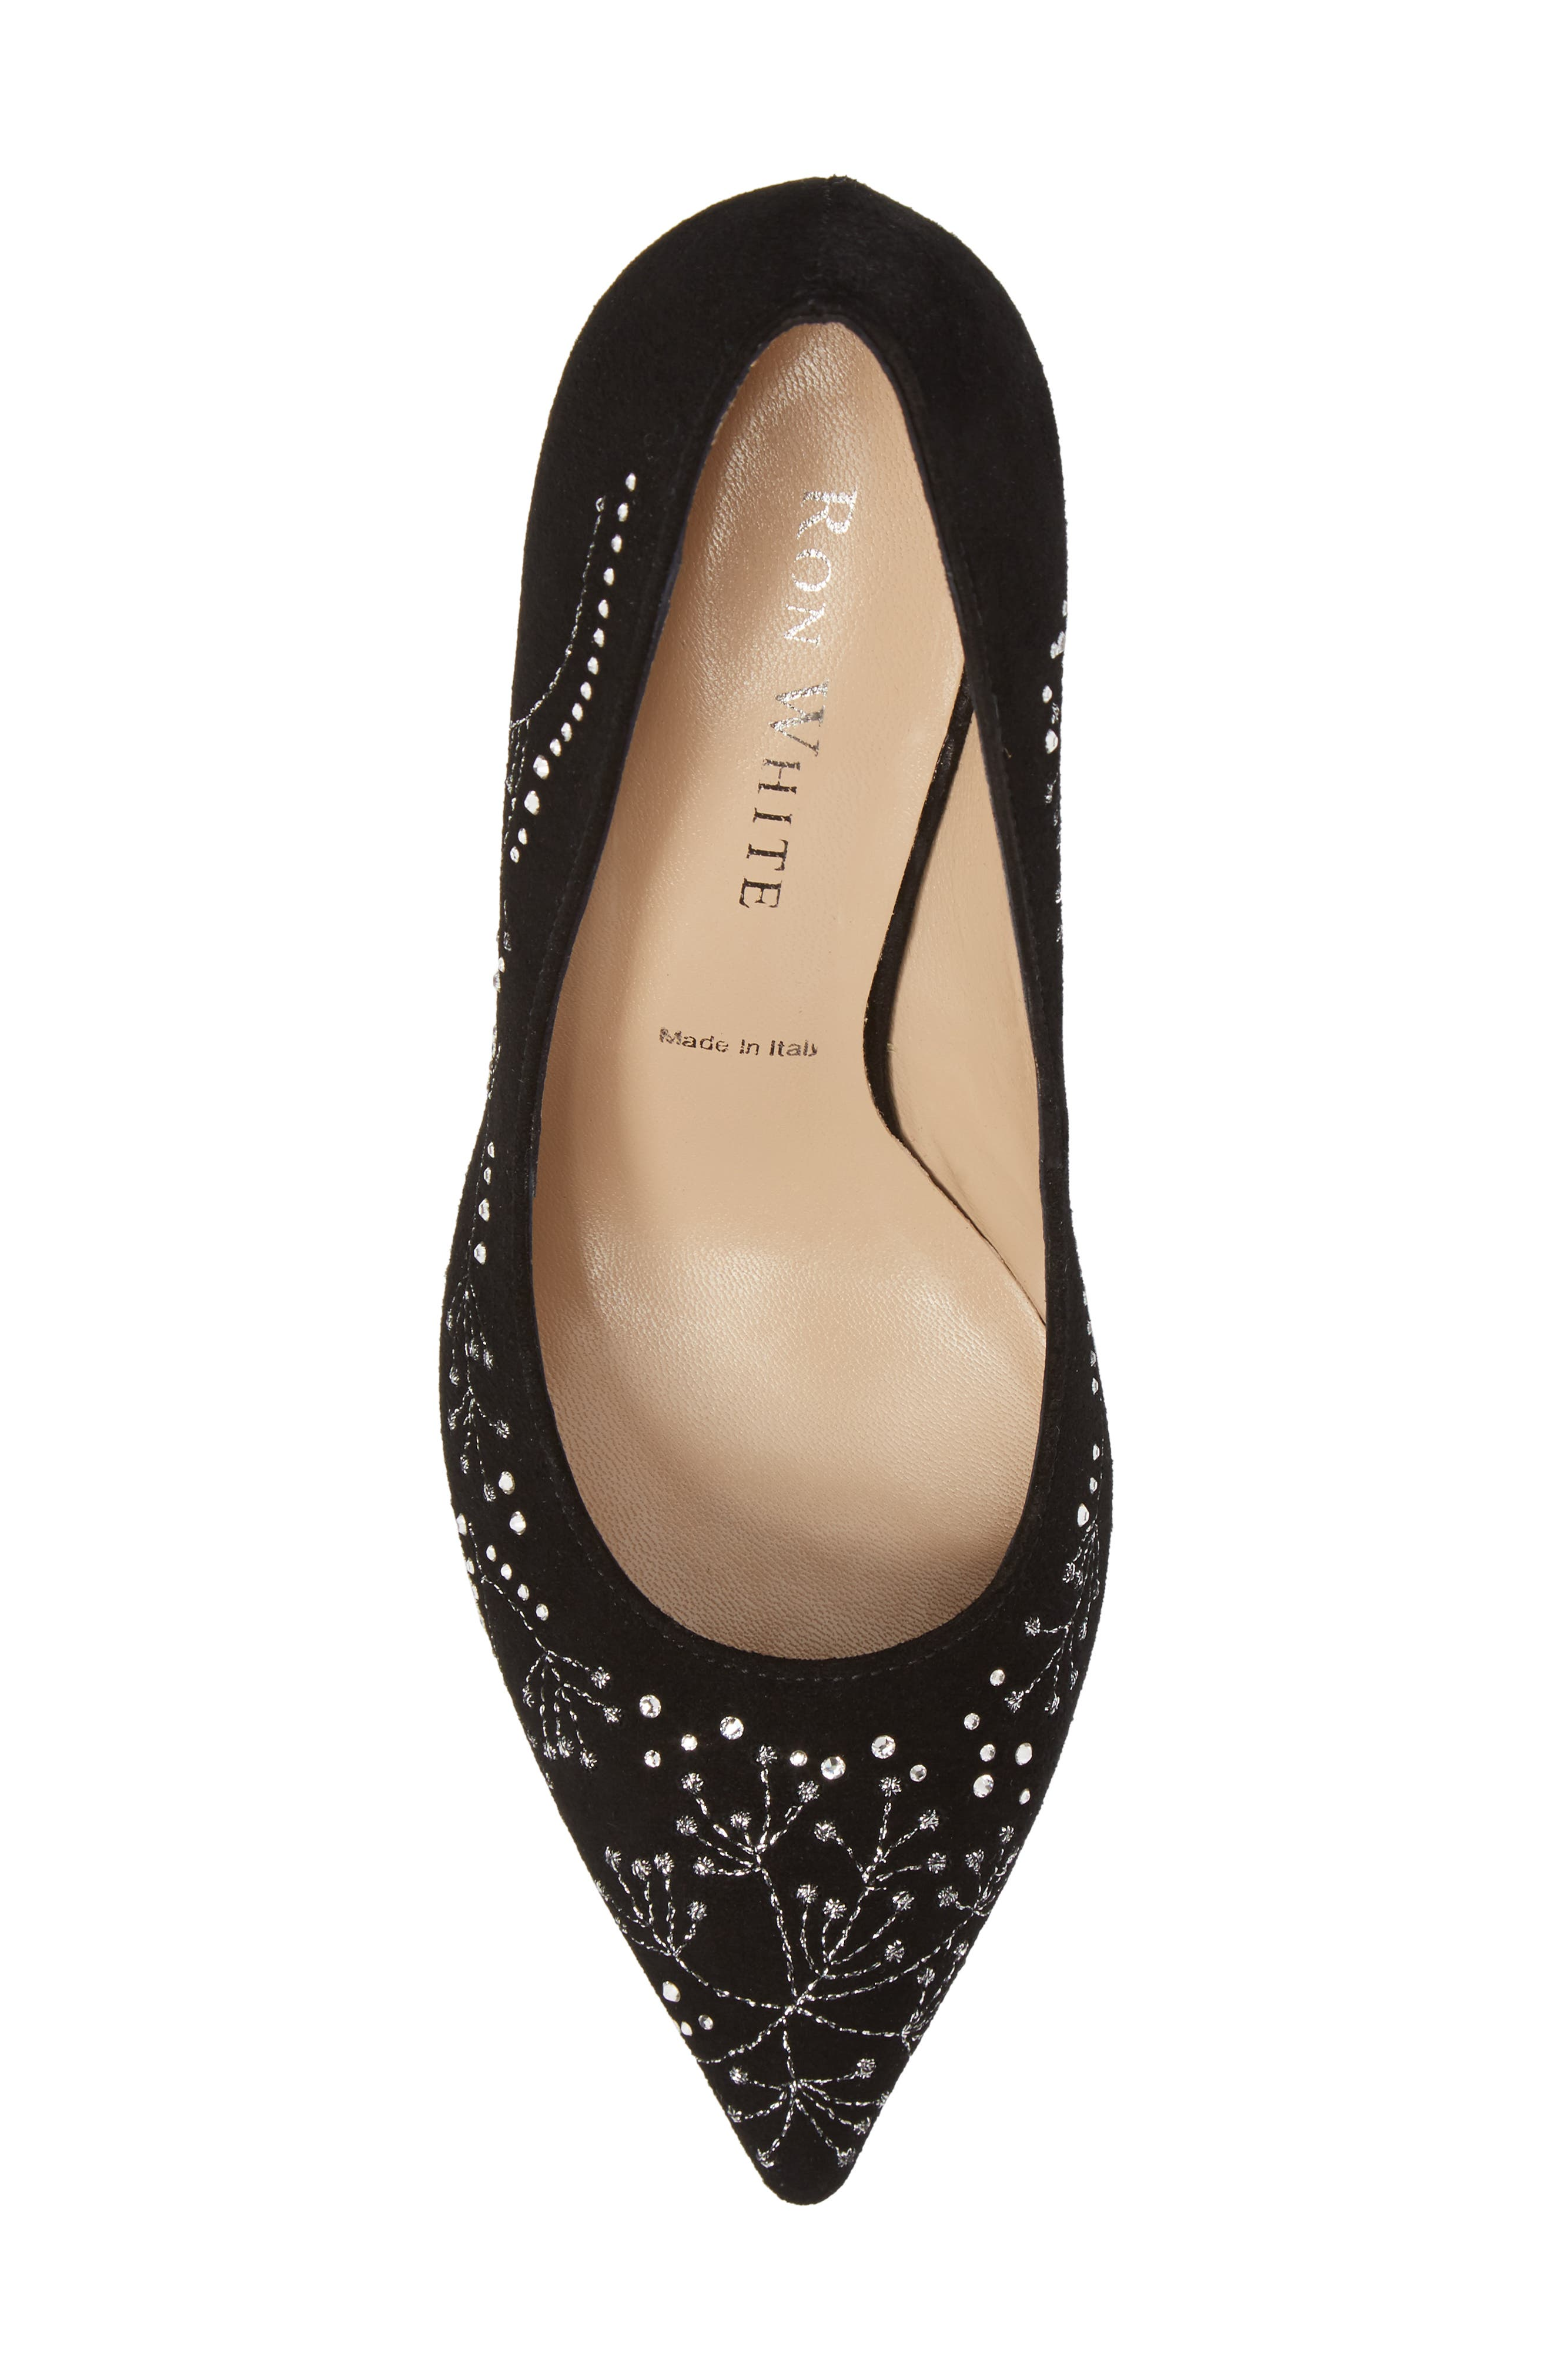 Carla Crystal Embellished Pump,                             Alternate thumbnail 5, color,                             001